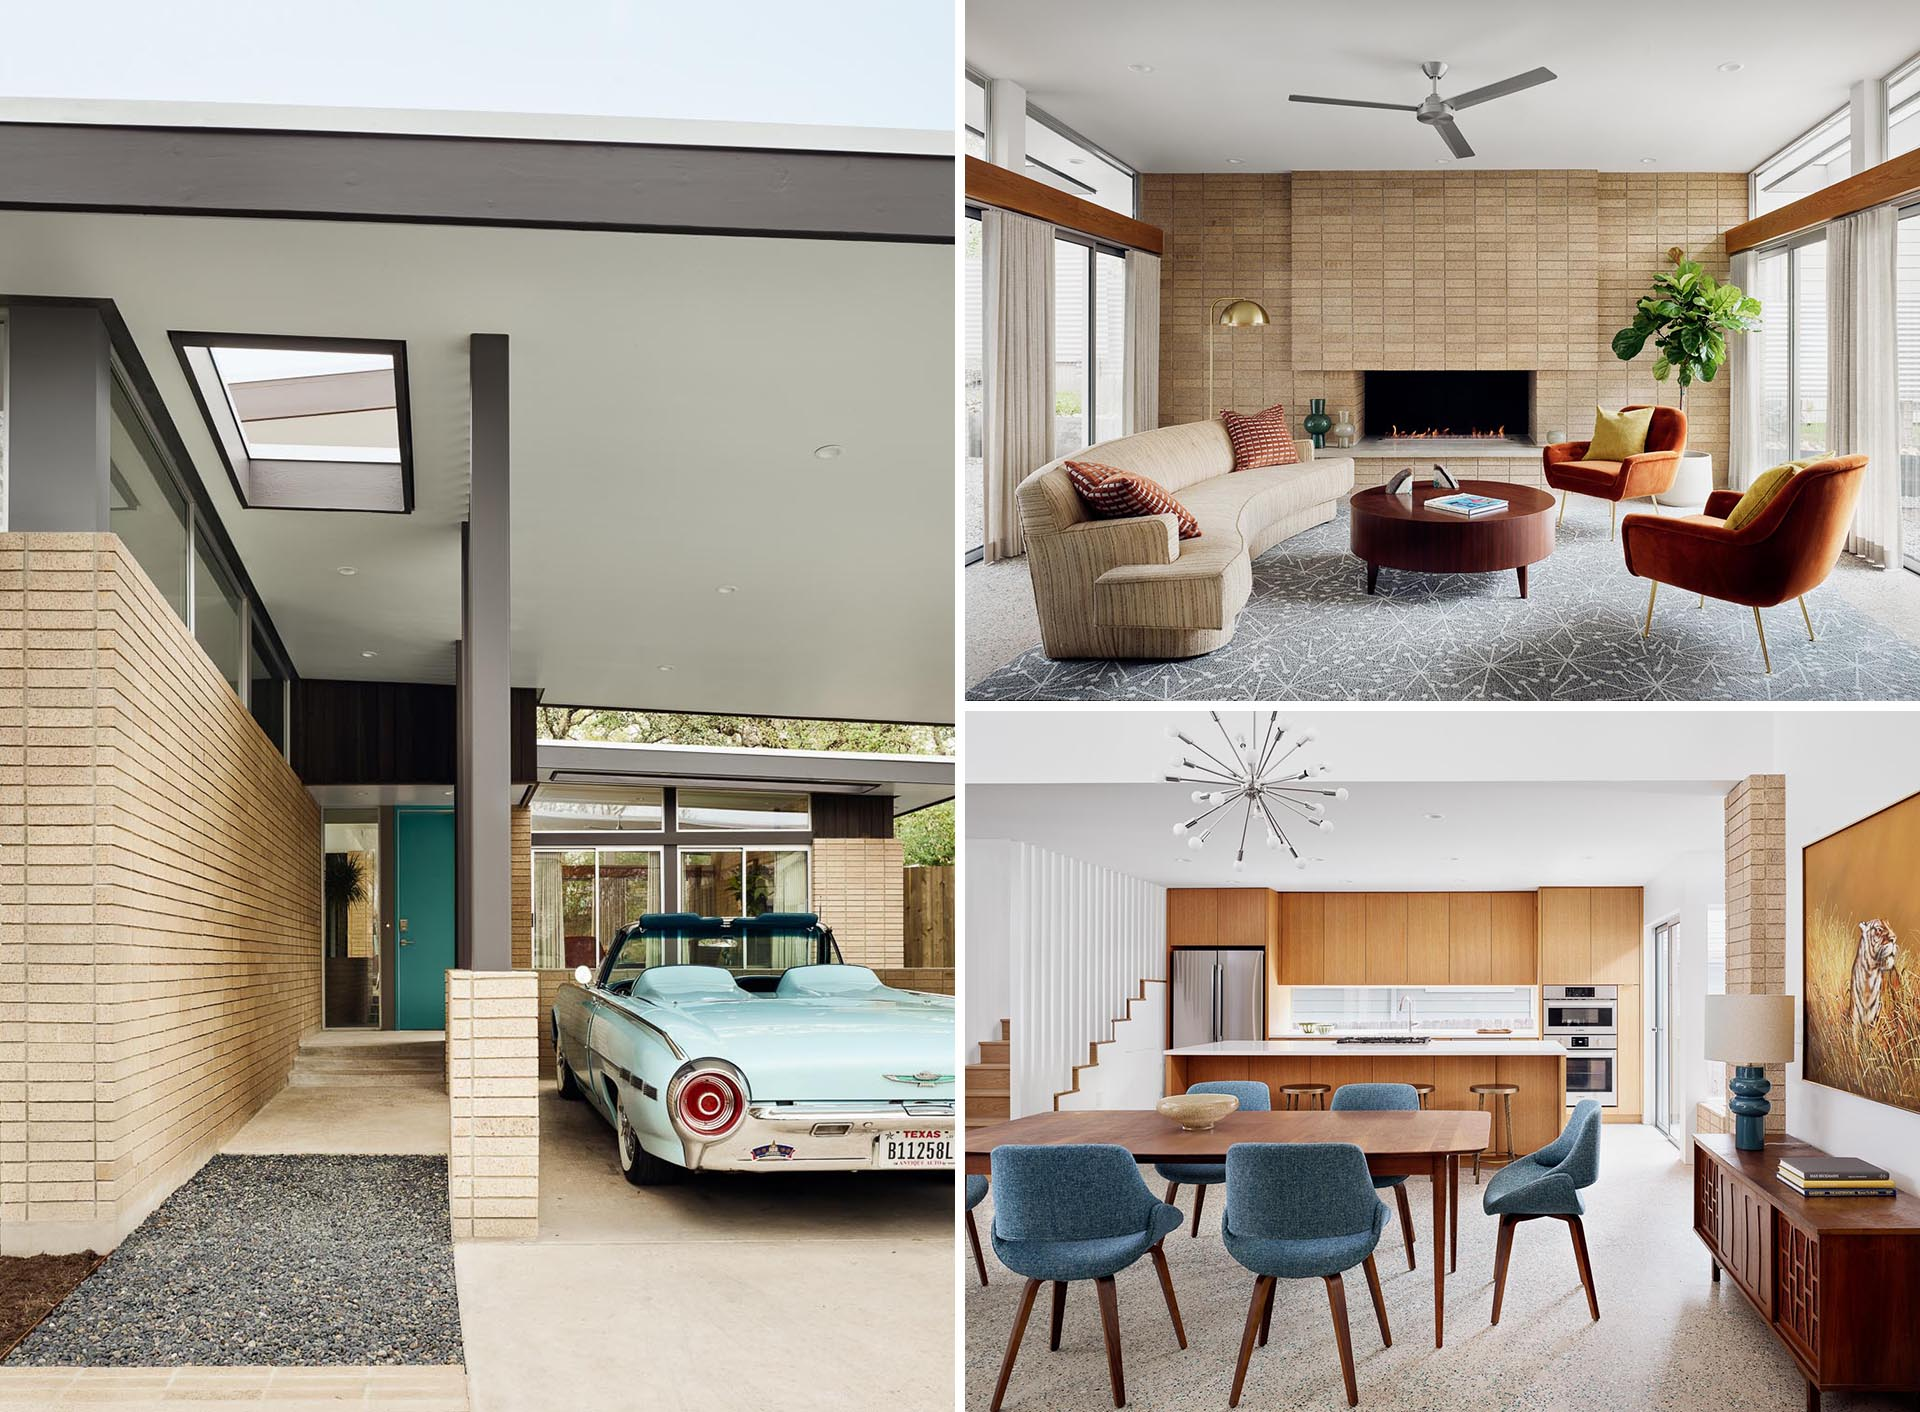 A mid-century modern inspired home with a brick fireplace, high ceilings, a wood kitchen, and one-of-a-kind concrete floor with colorful glass finish.